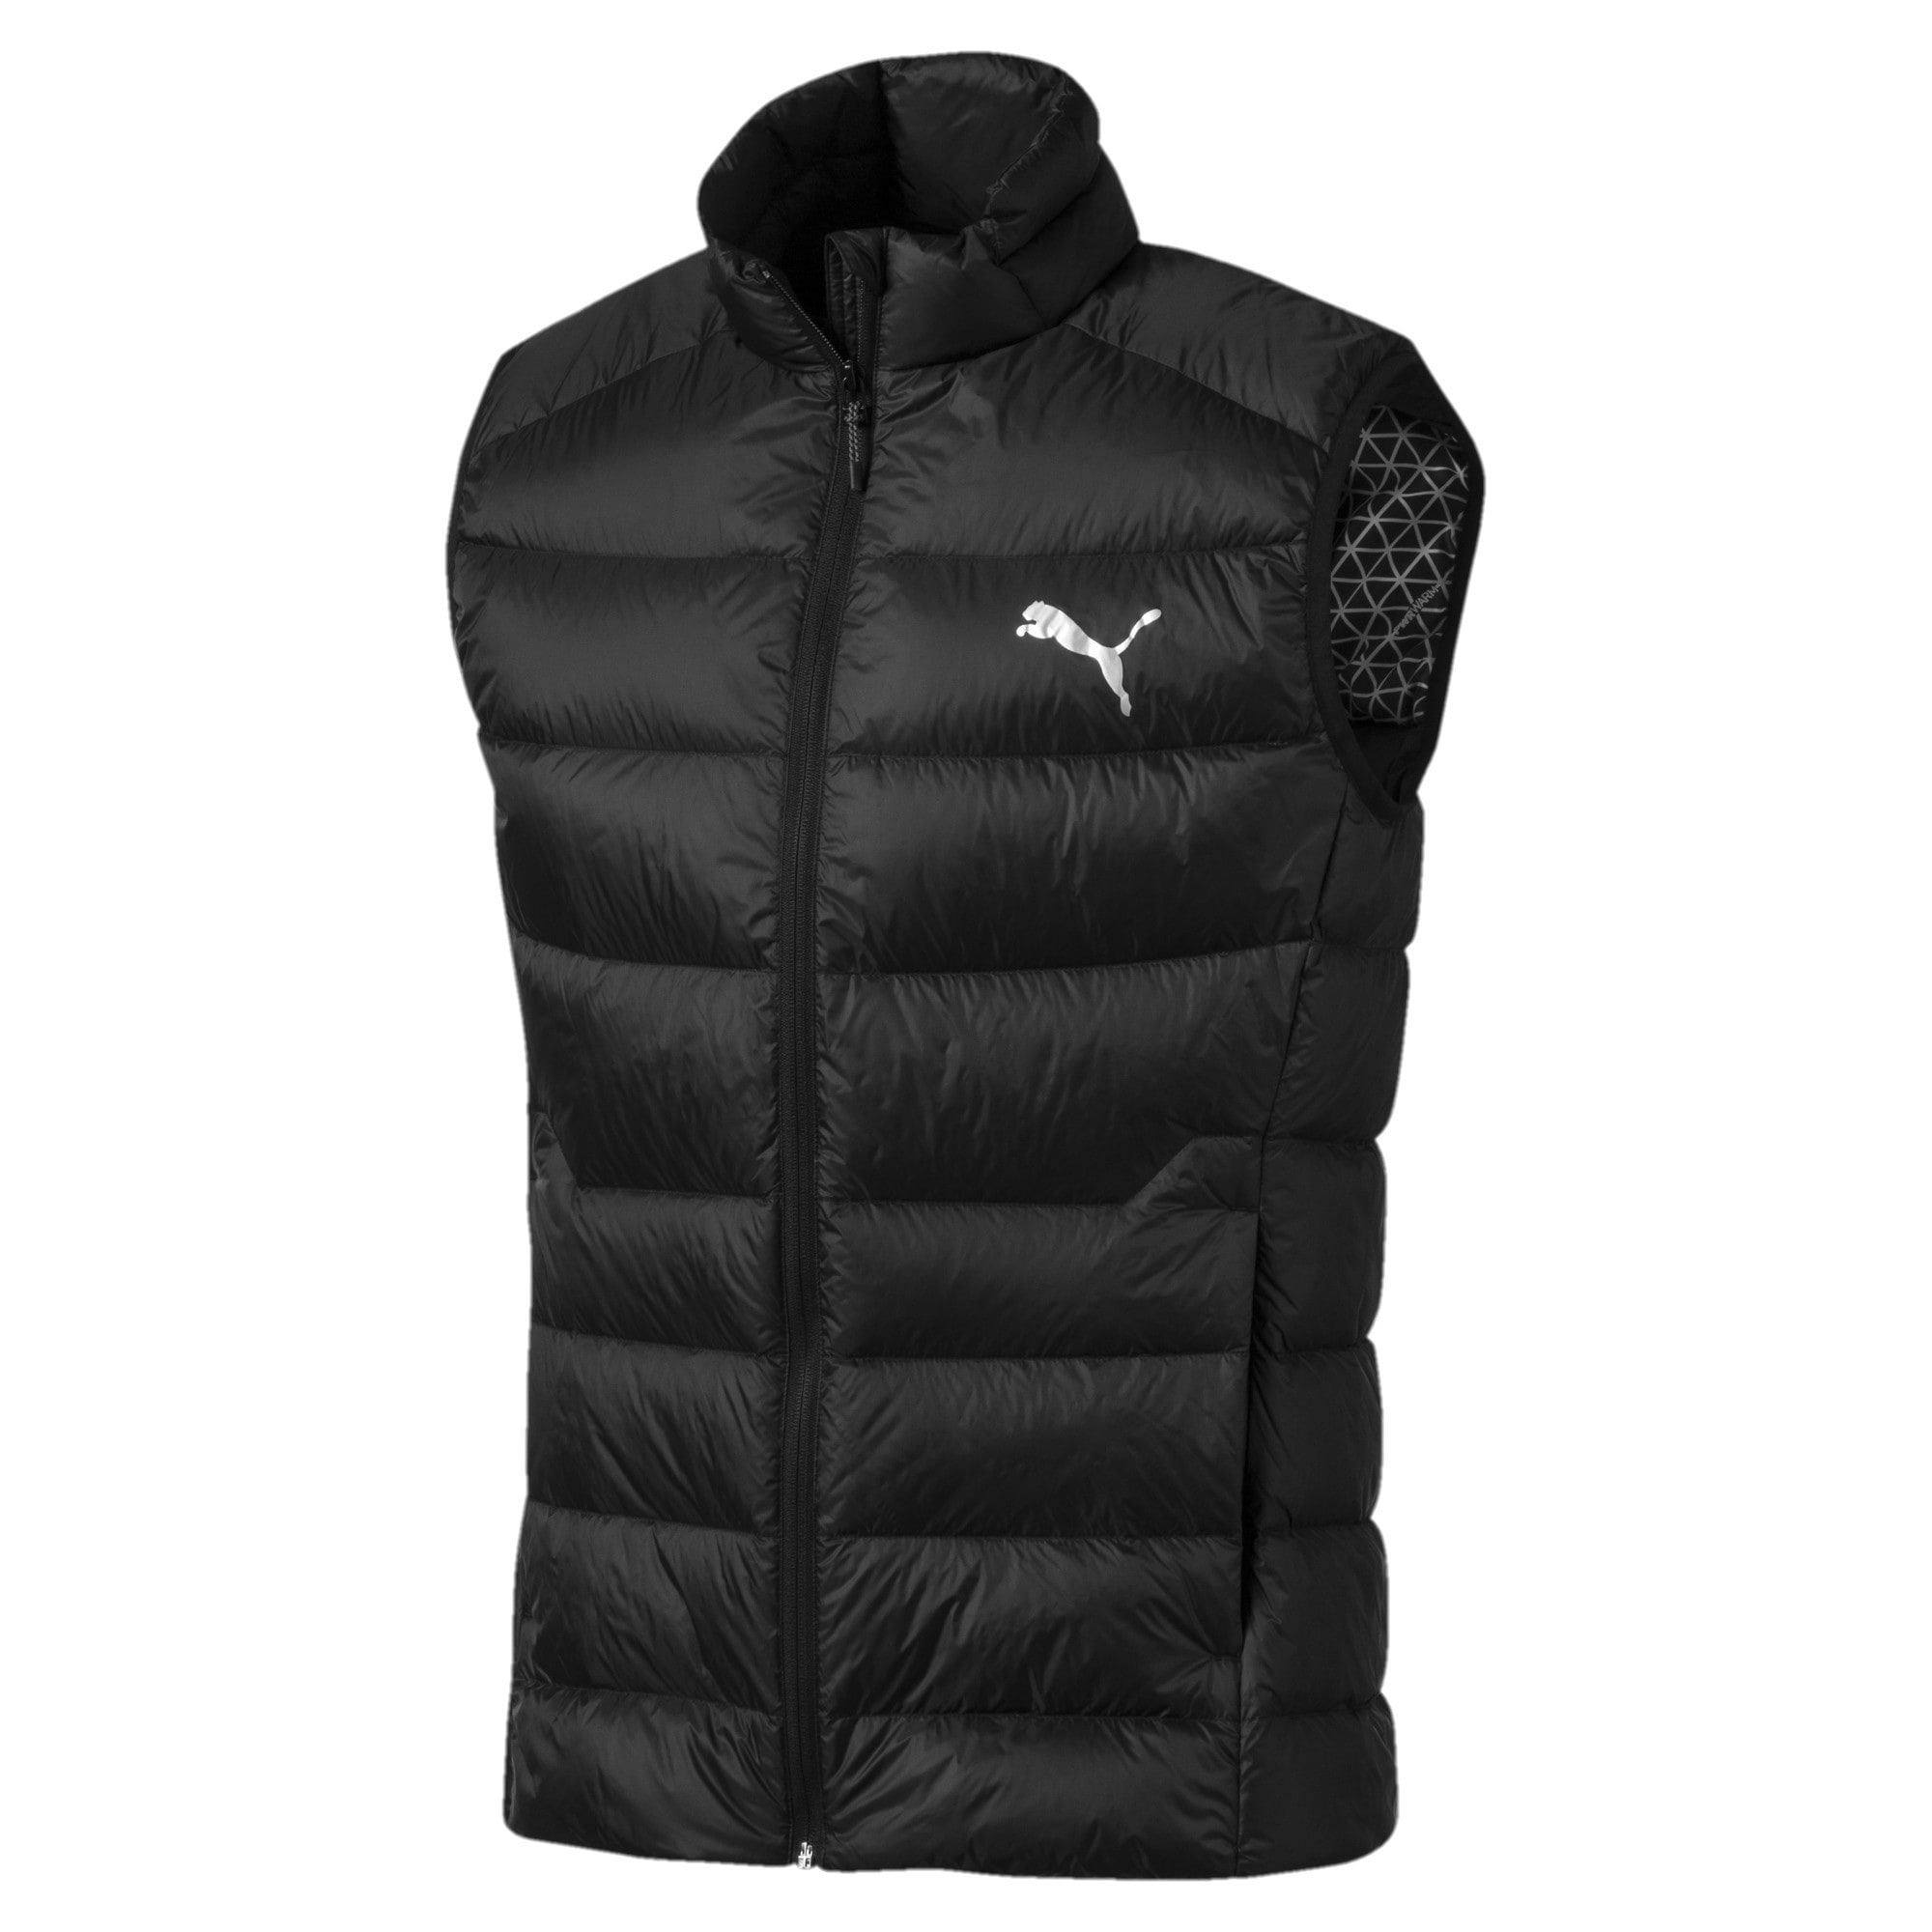 Thumbnail 4 of PWRWarm packLITE 600 Down Men's Vest, Puma Black, medium